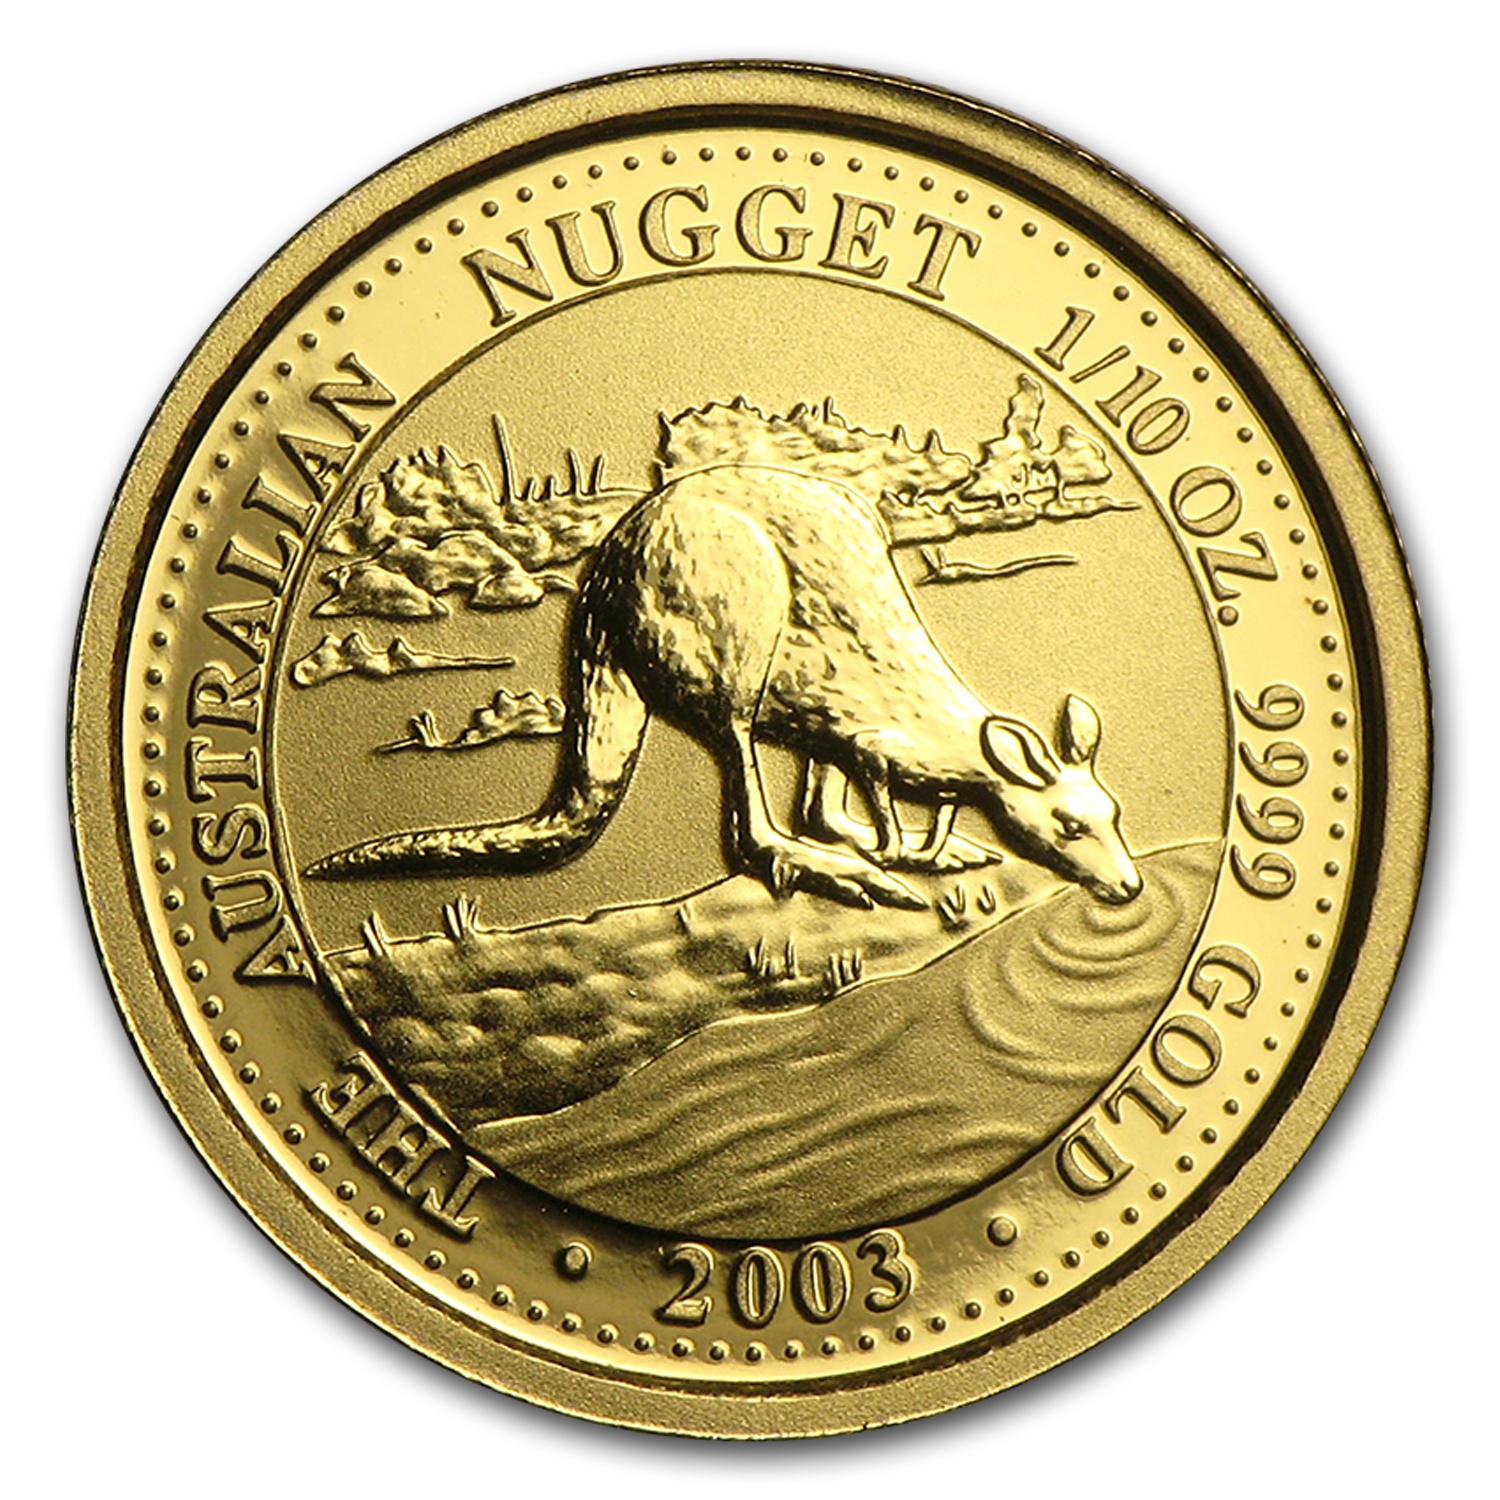 2003 1/10 oz Australian Gold Nugget